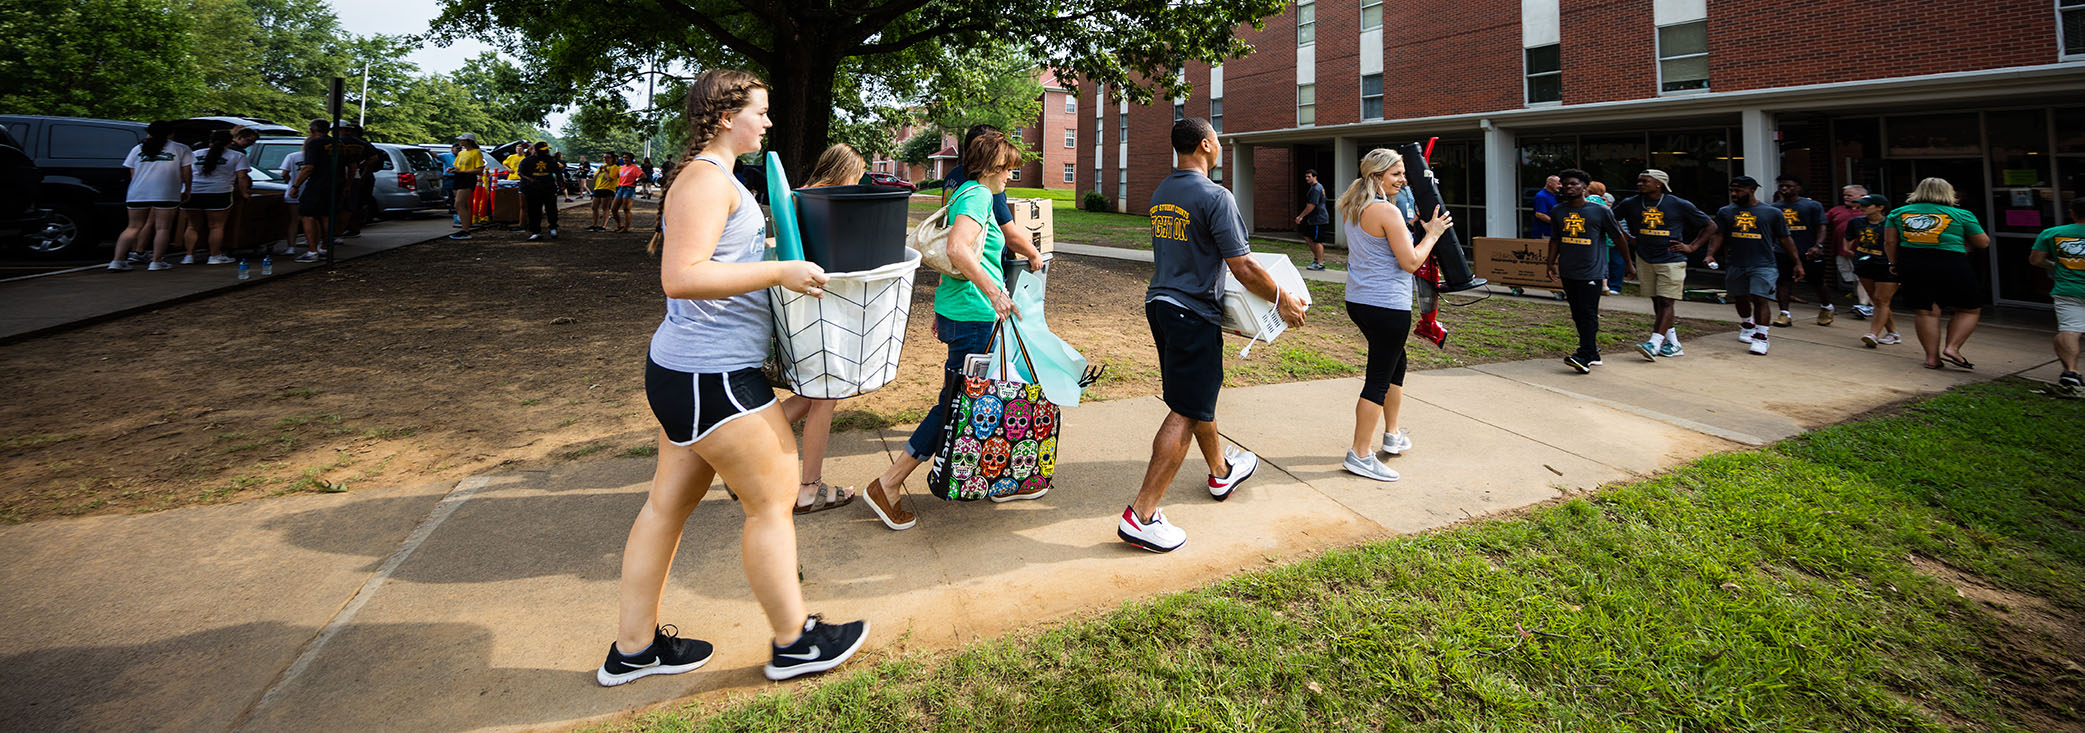 a group of new students move their belongings into a residence hall